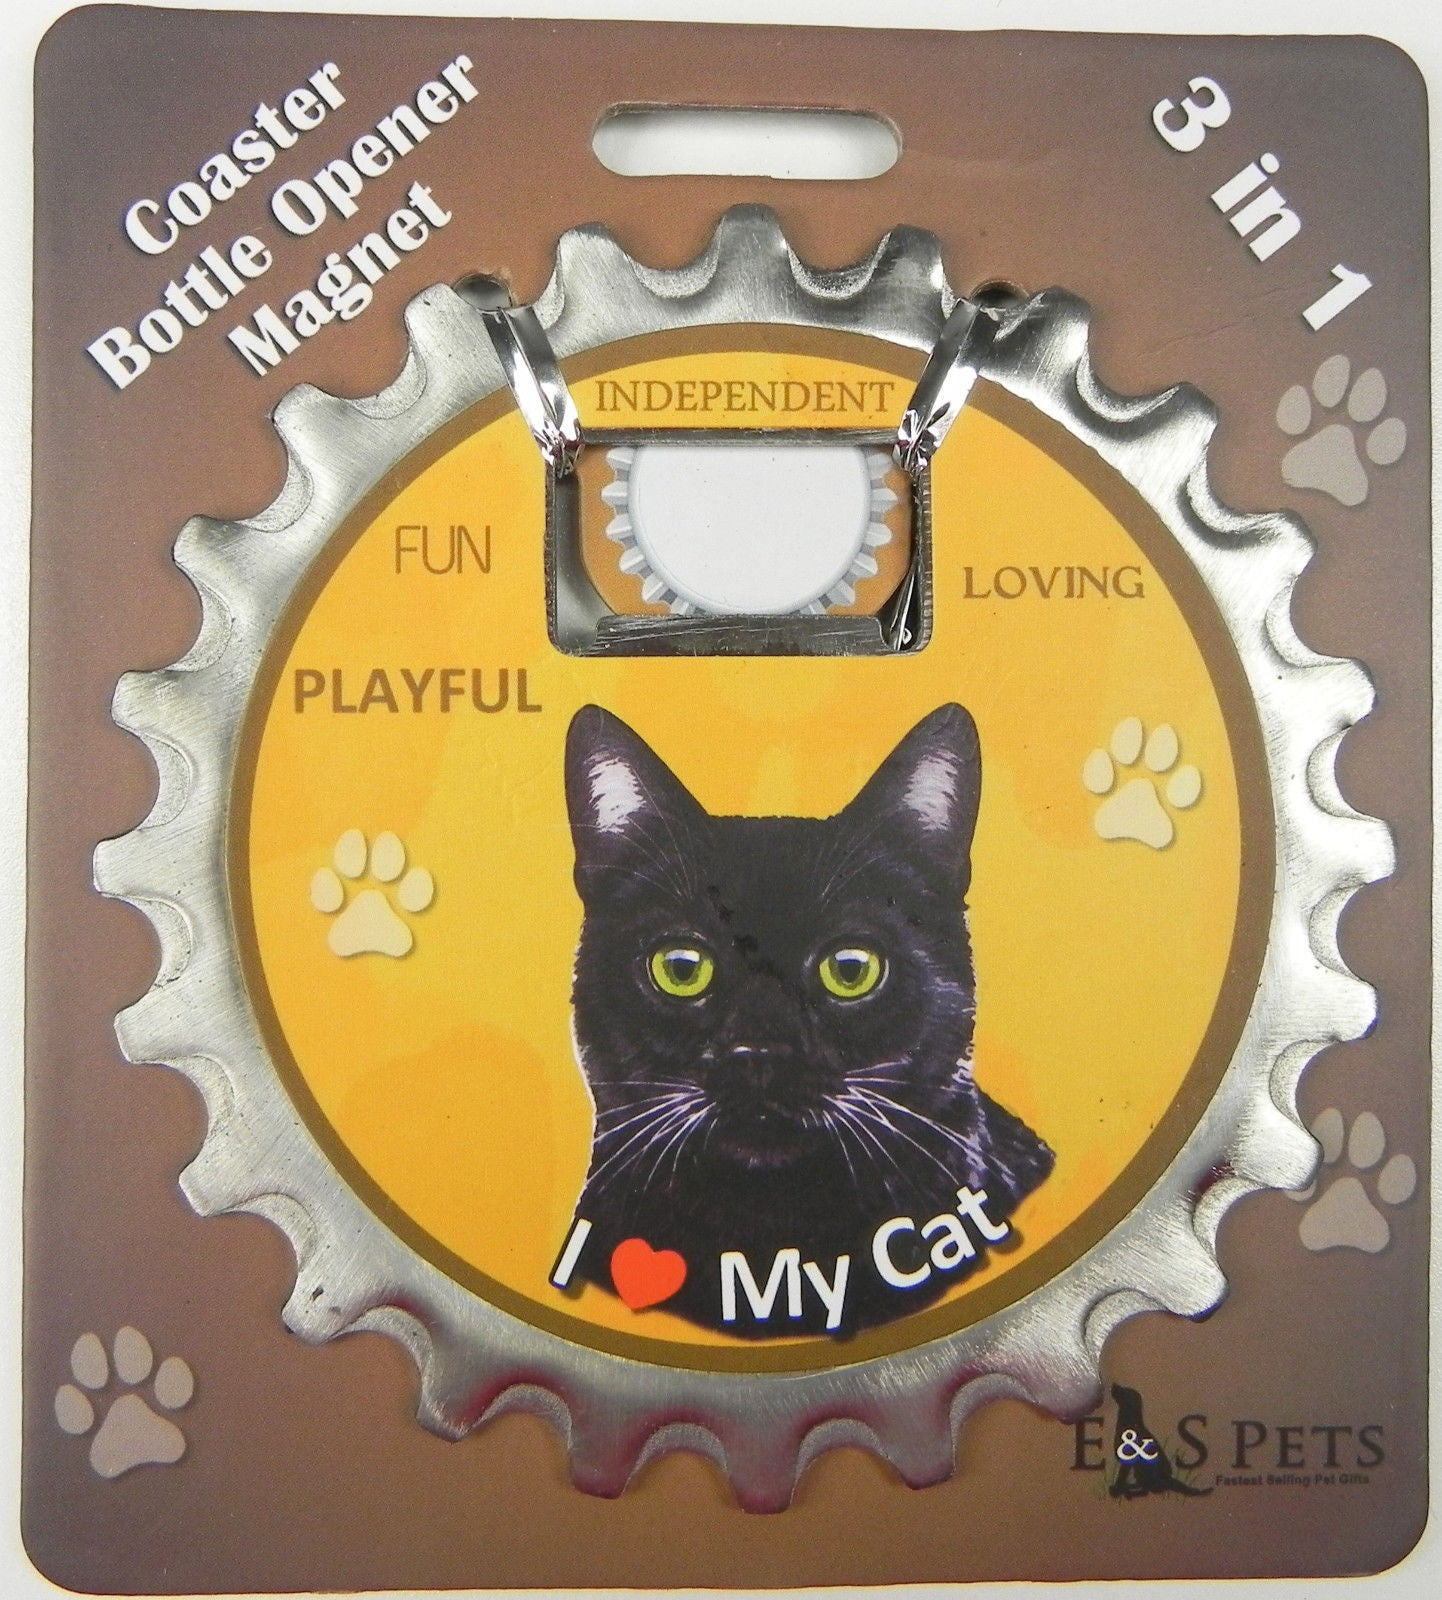 Bottle Ninja - 3 in 1 Coaster/Bottle Opener/ Magnet - Black Cat